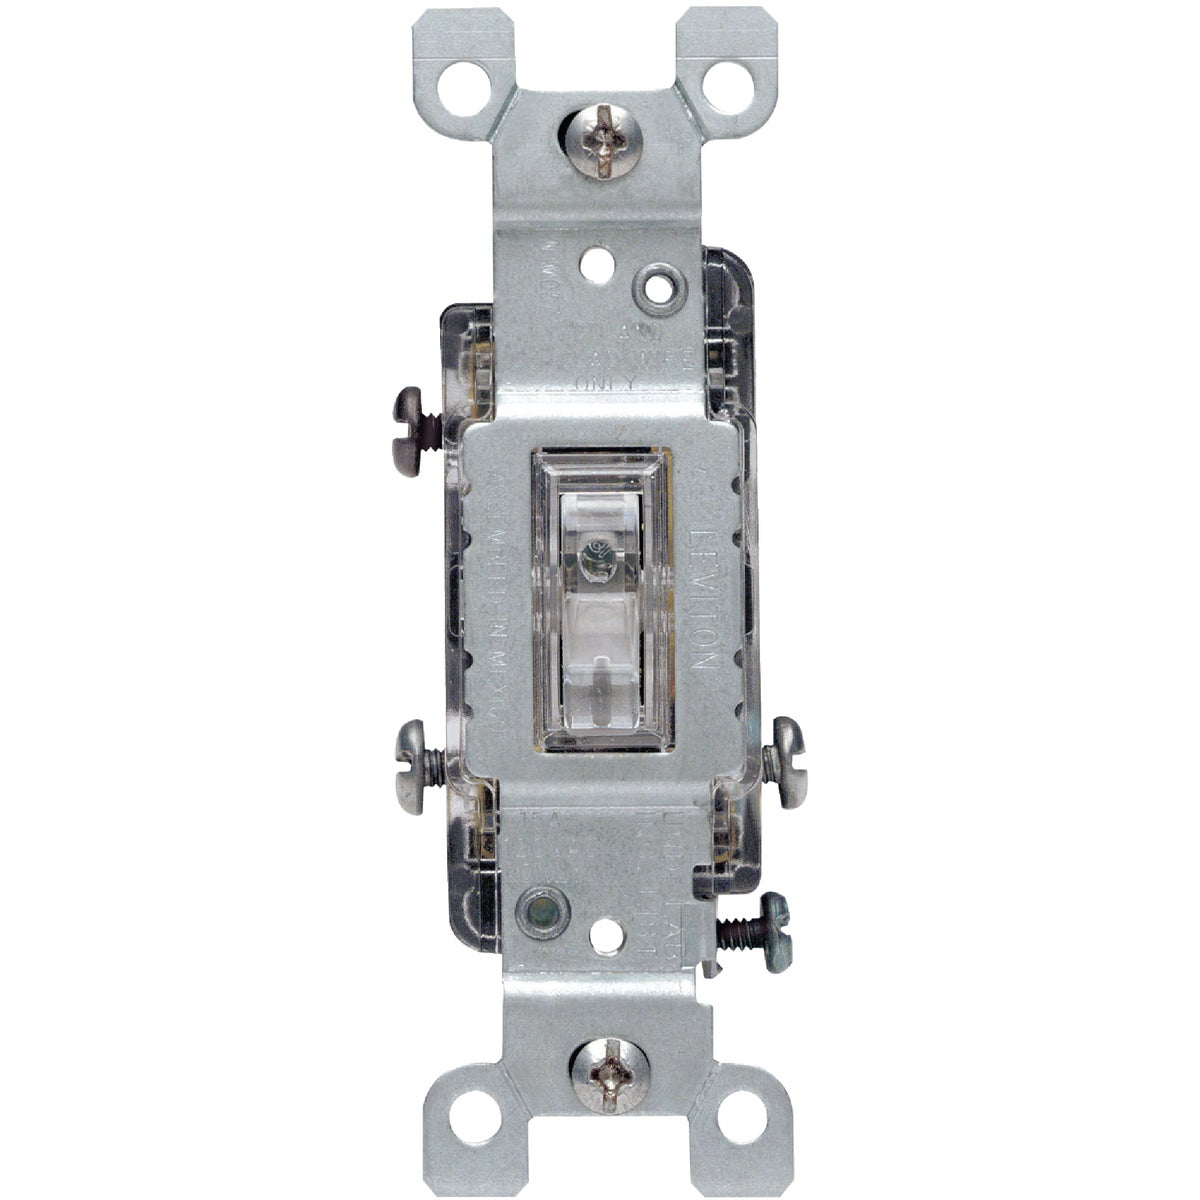 CLEAR LTD 3-WAY SWITCH